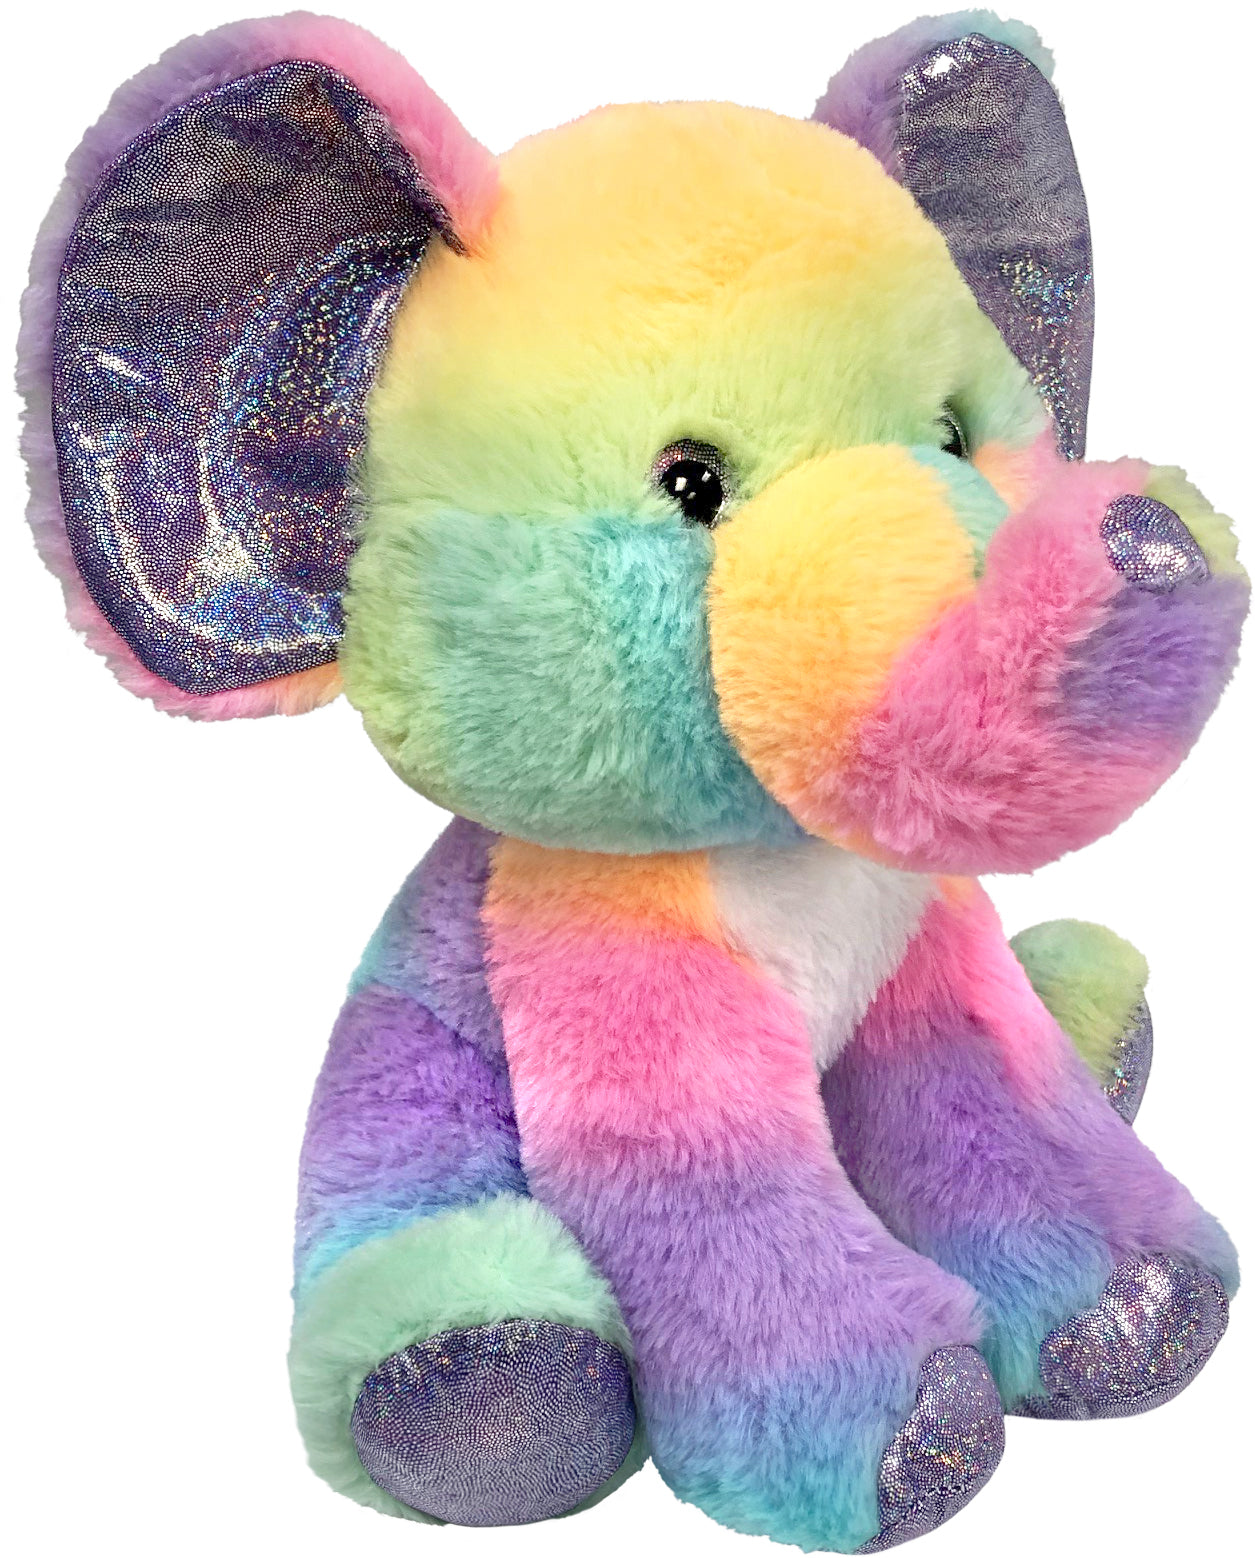 "Rainbow Sherbet - 10.5"" Sitting Elephant"